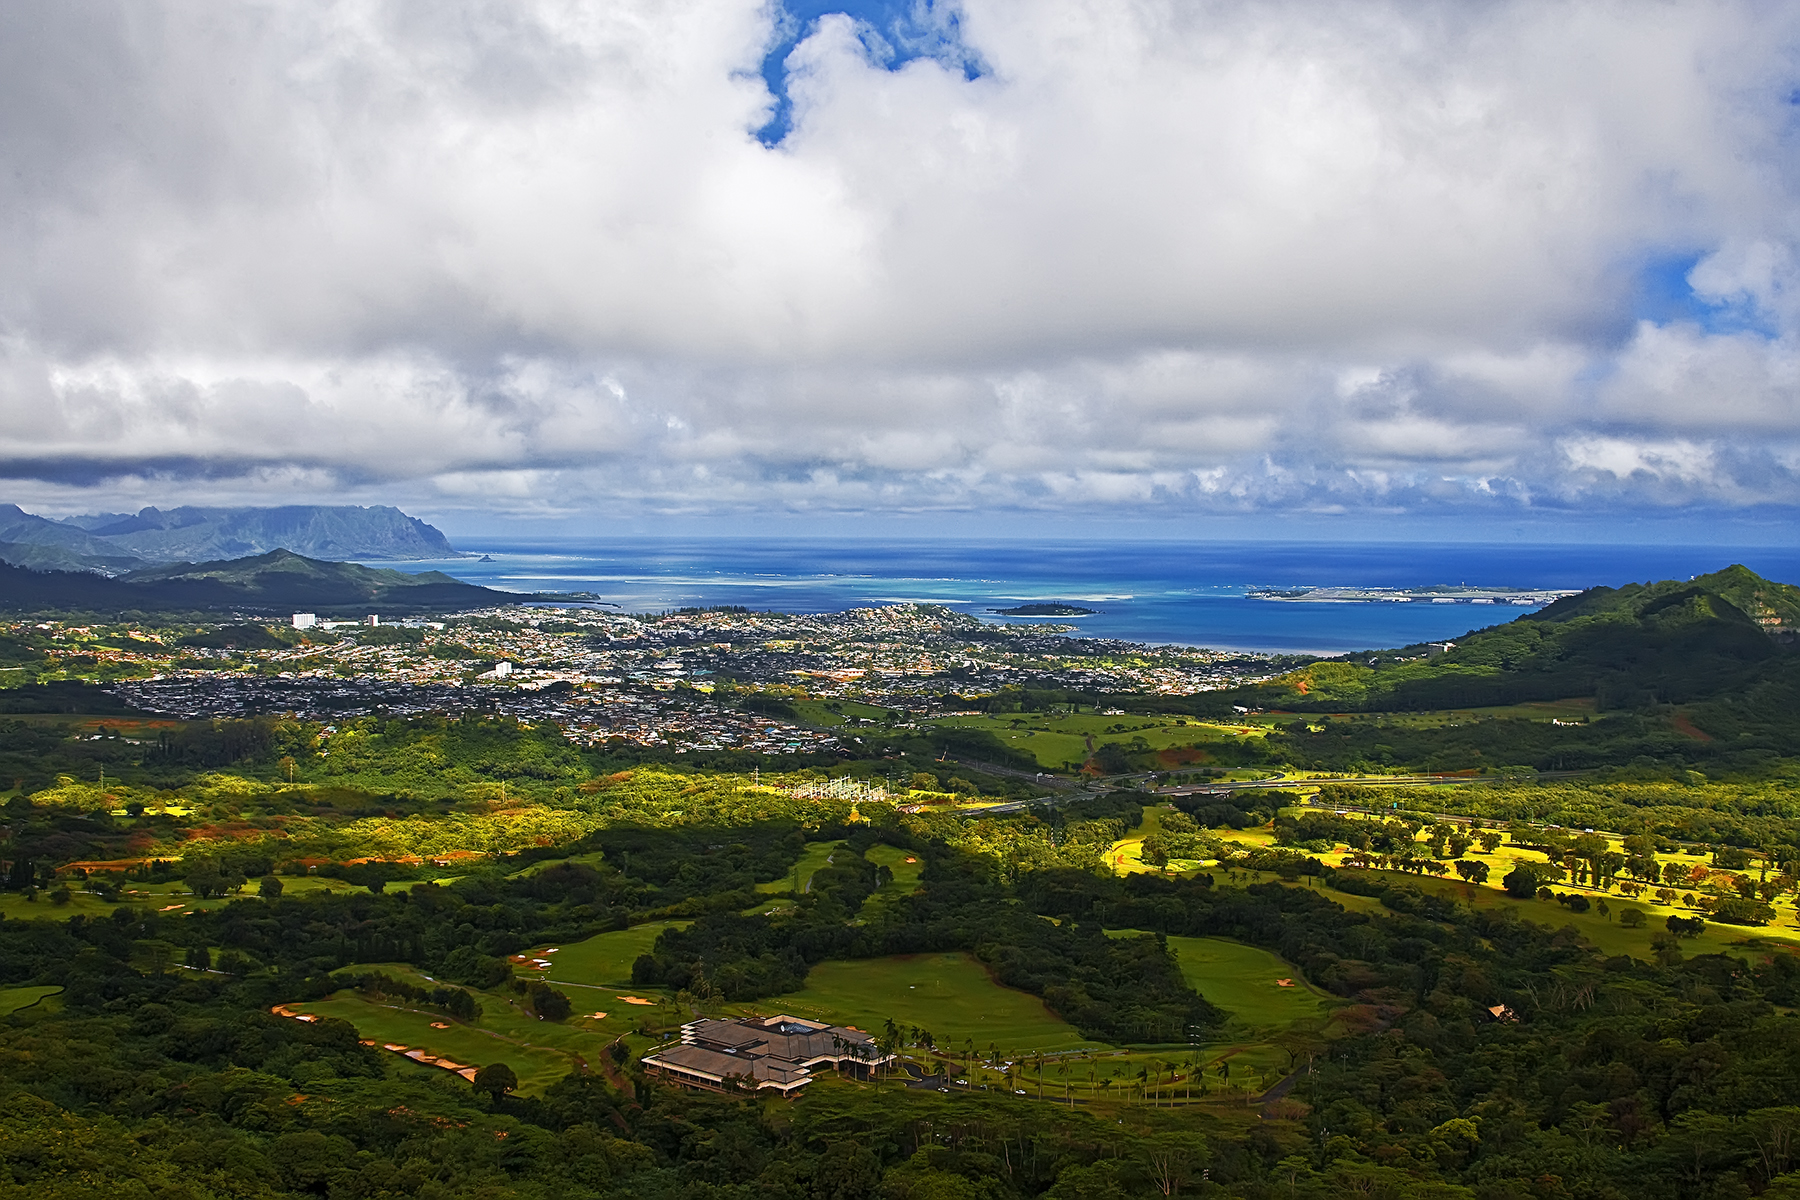 Nu uanu pali pali lookout view of the windward for The windward